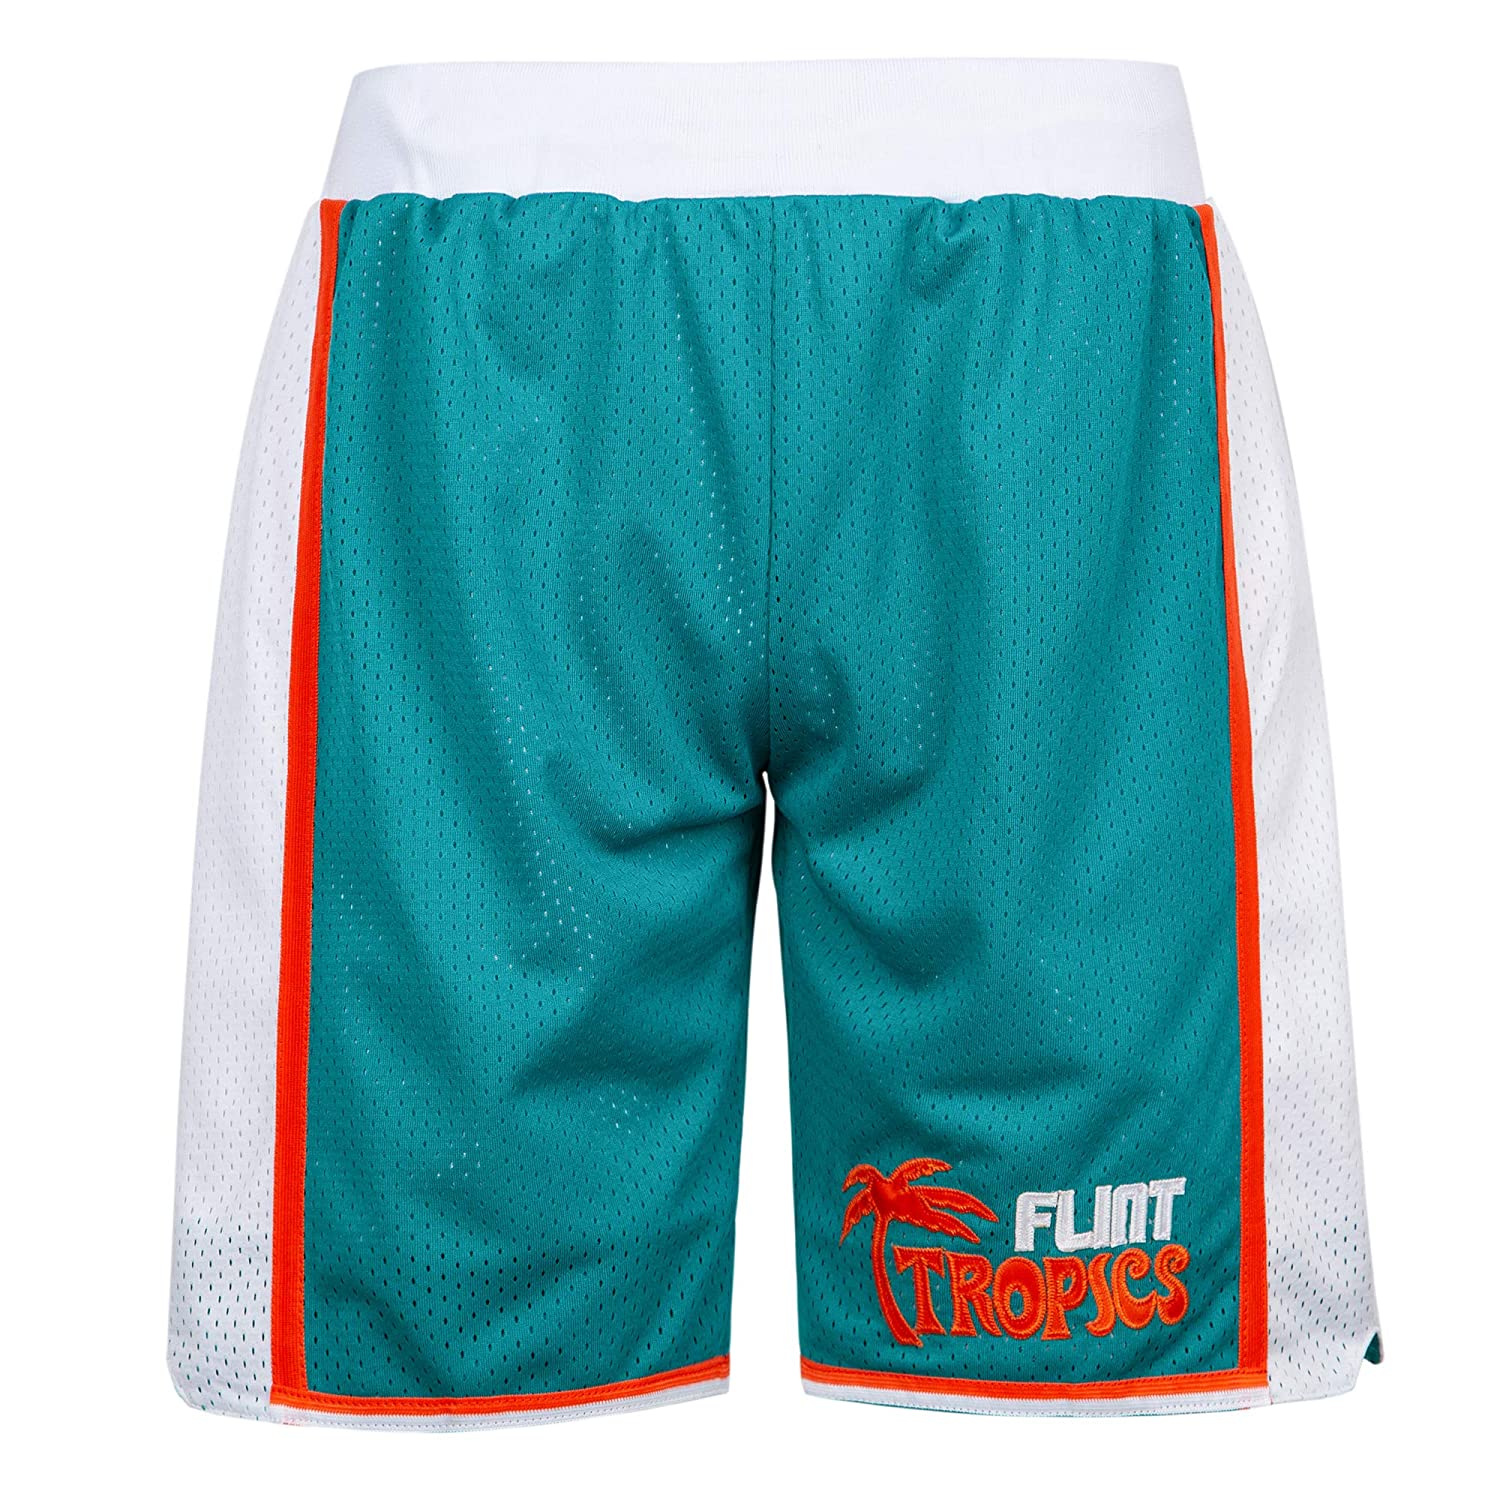 MOLPE Flint Tropics Green Basketball Short S-3XL